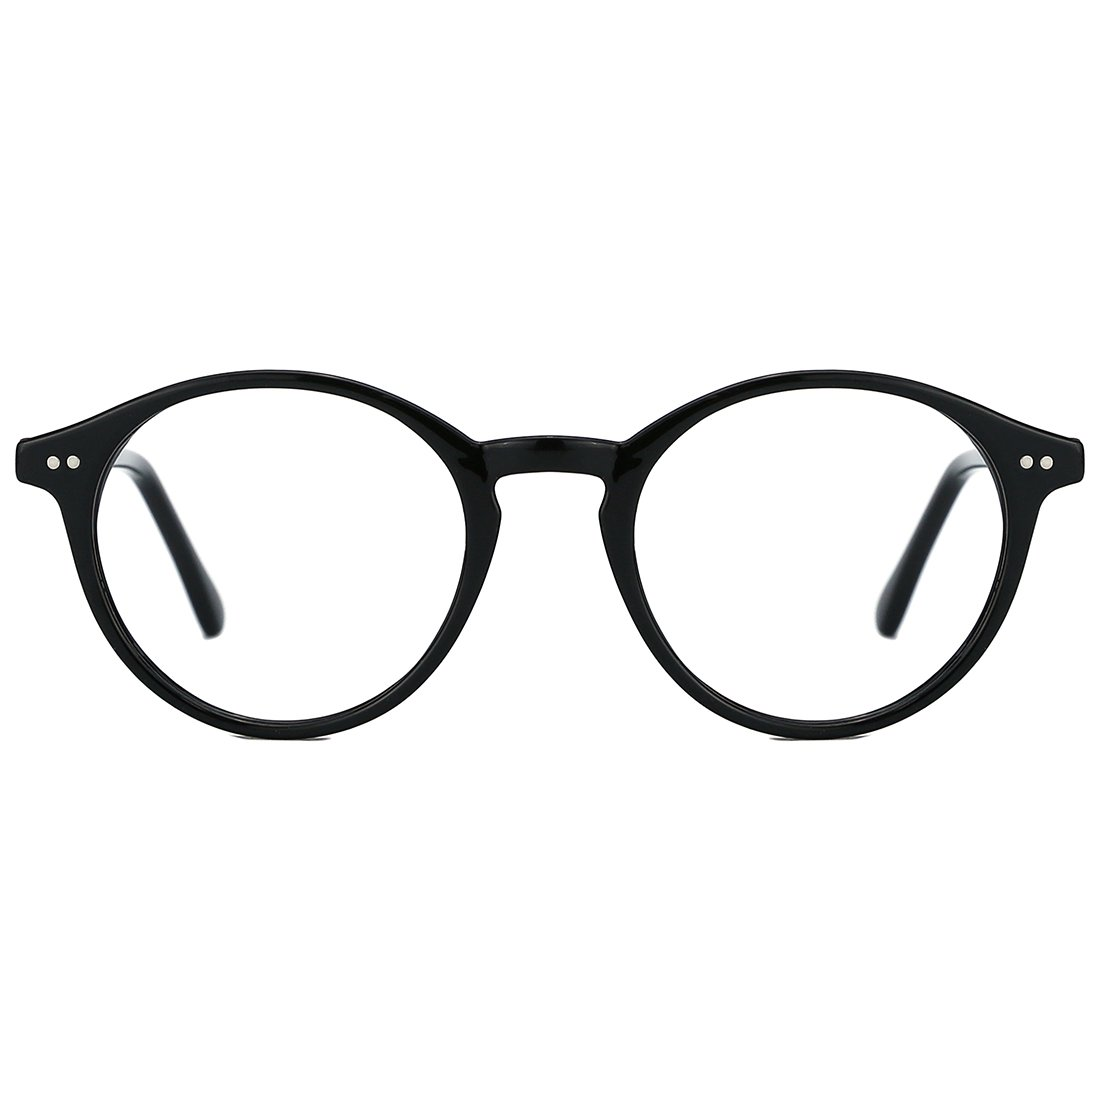 8d40ccb736 Amazon.com  TIJN Vintage Women Thick Round Rim Non-prescription Glasses  Eyeglasses Clear Lens  Clothing